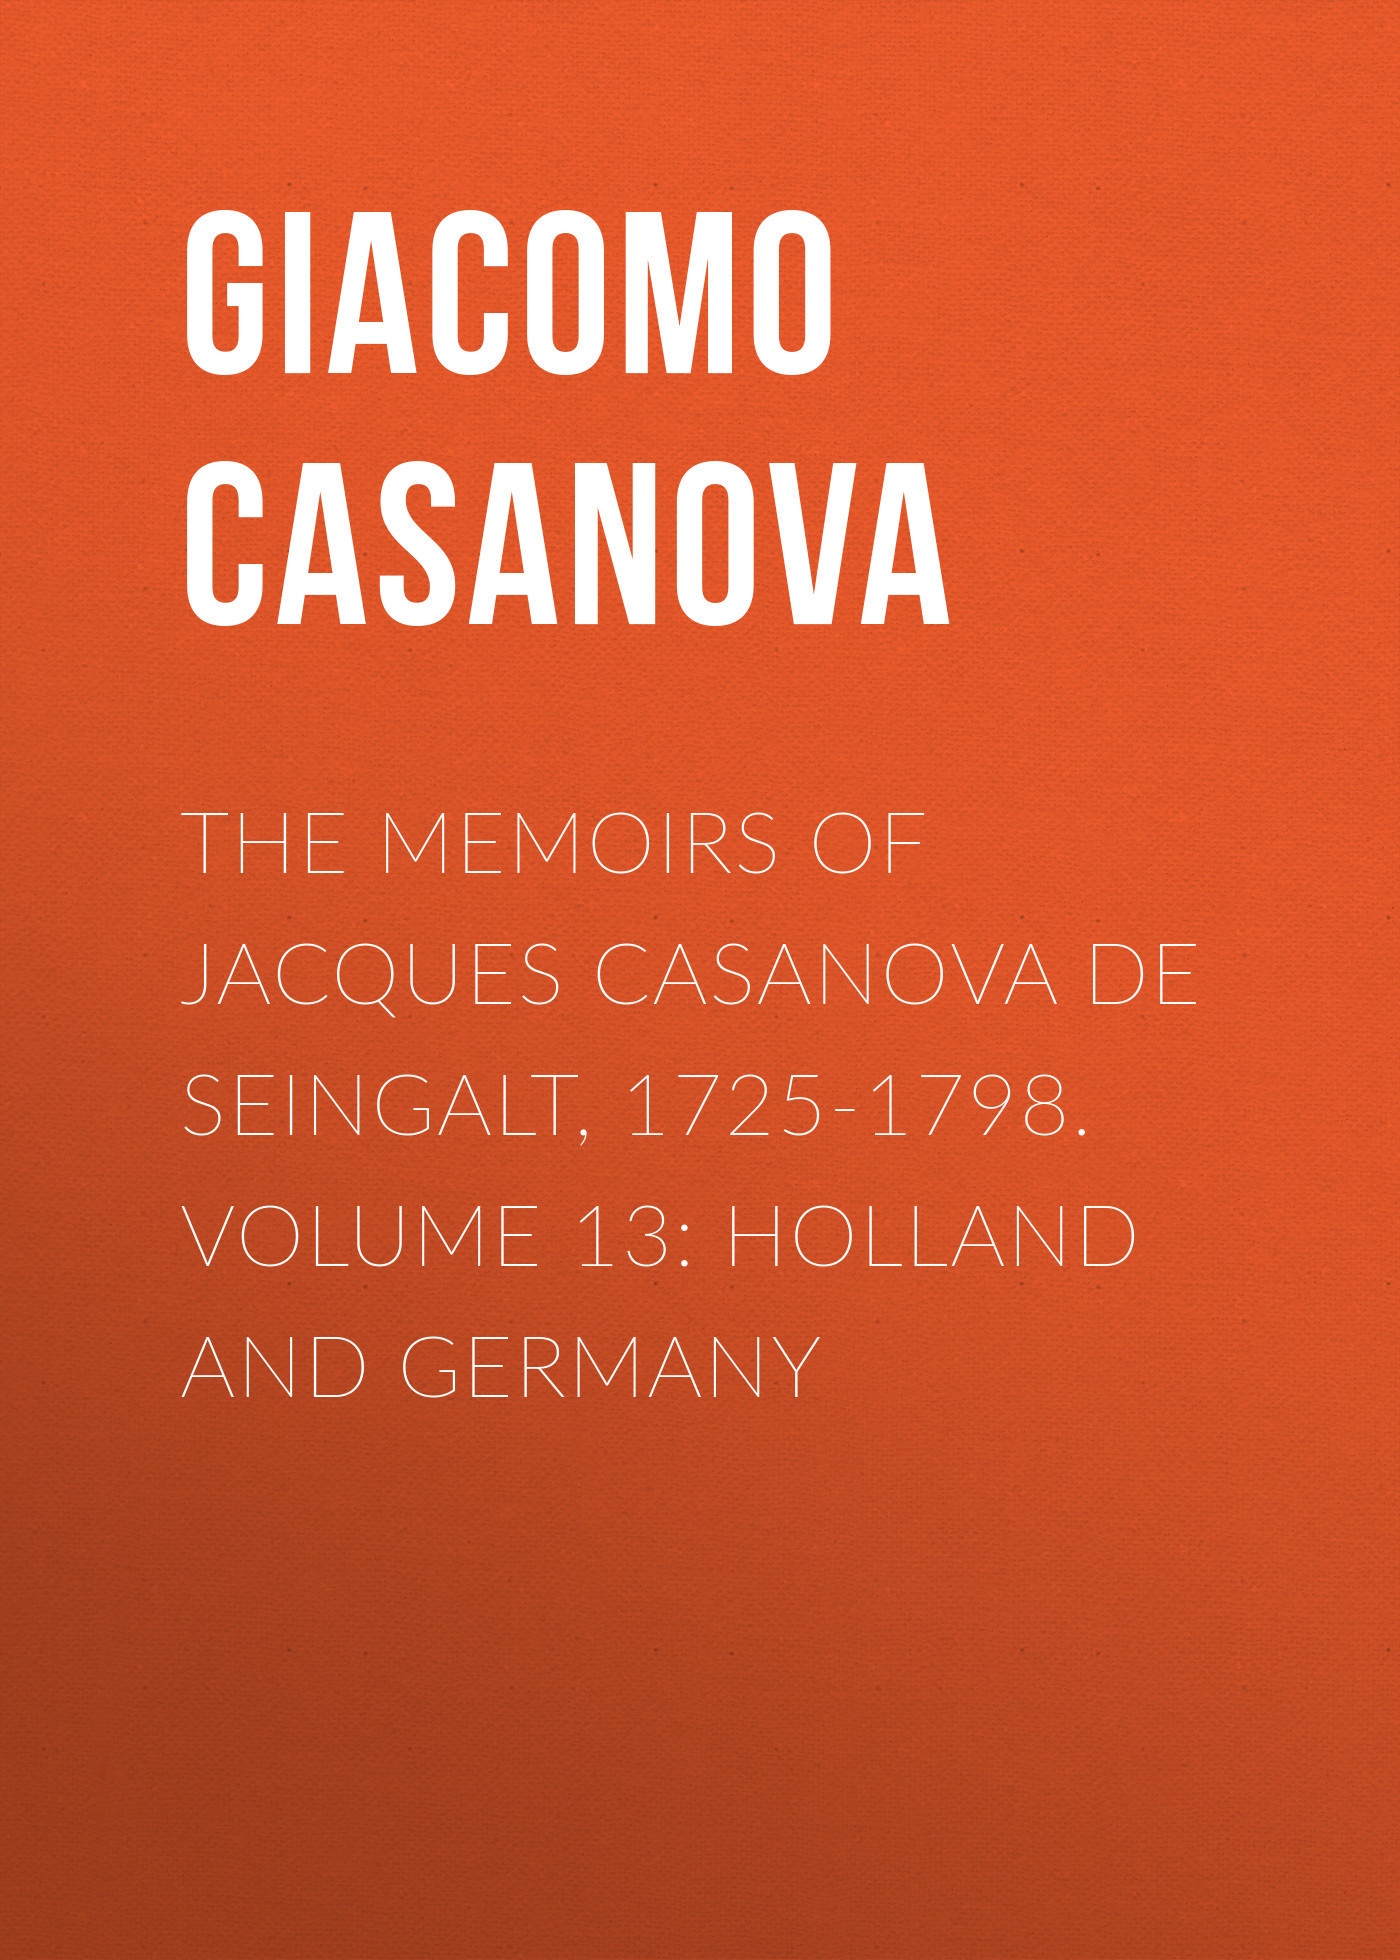 Giacomo Casanova The Memoirs of Jacques Casanova de Seingalt, 1725-1798. Volume 13: Holland and Germany футболка рингер printio чёрный причёрный кот